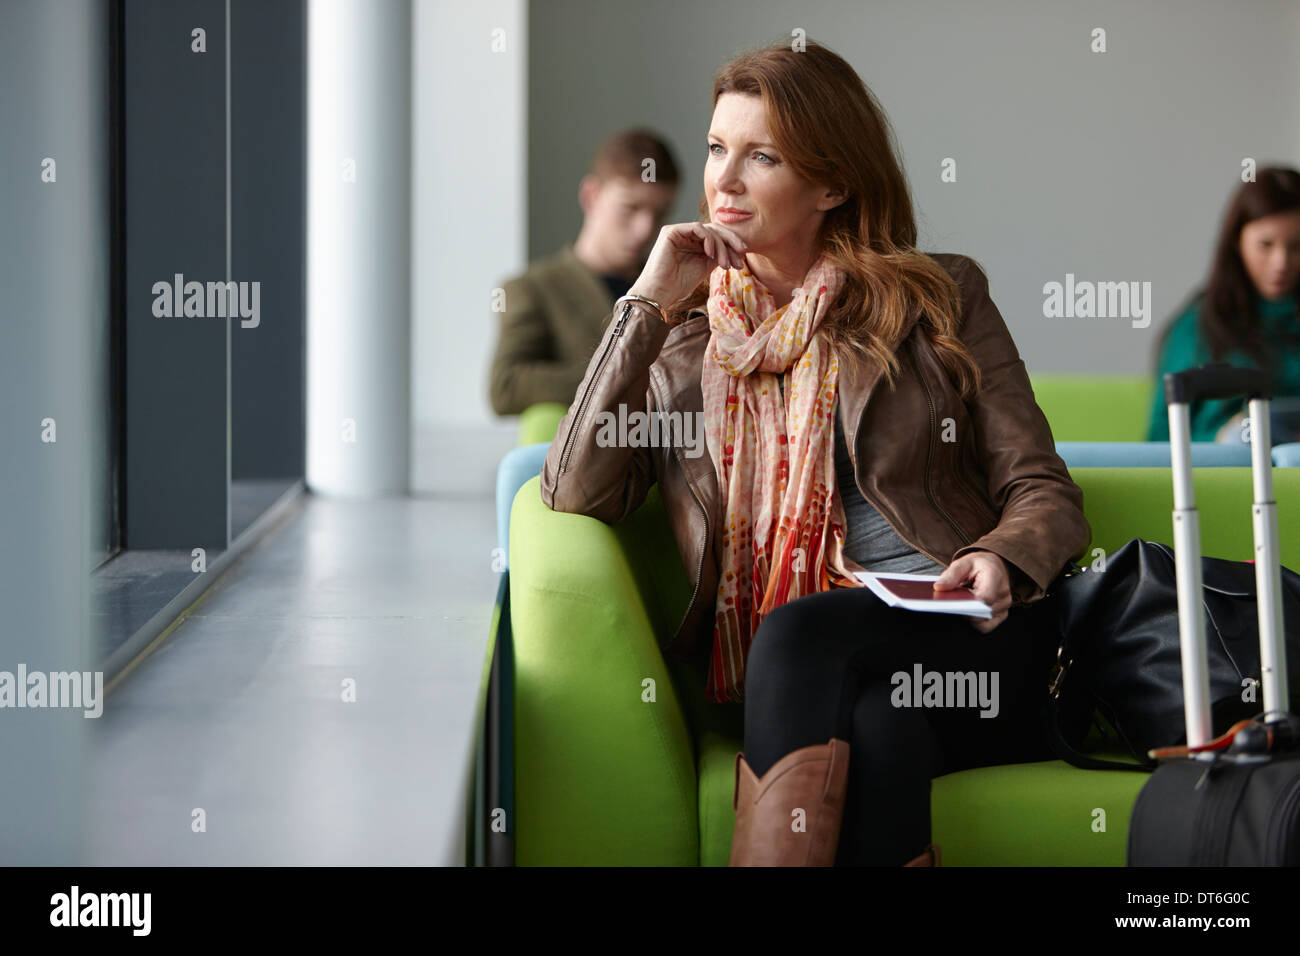 Mature woman in departure lounge - Stock Image